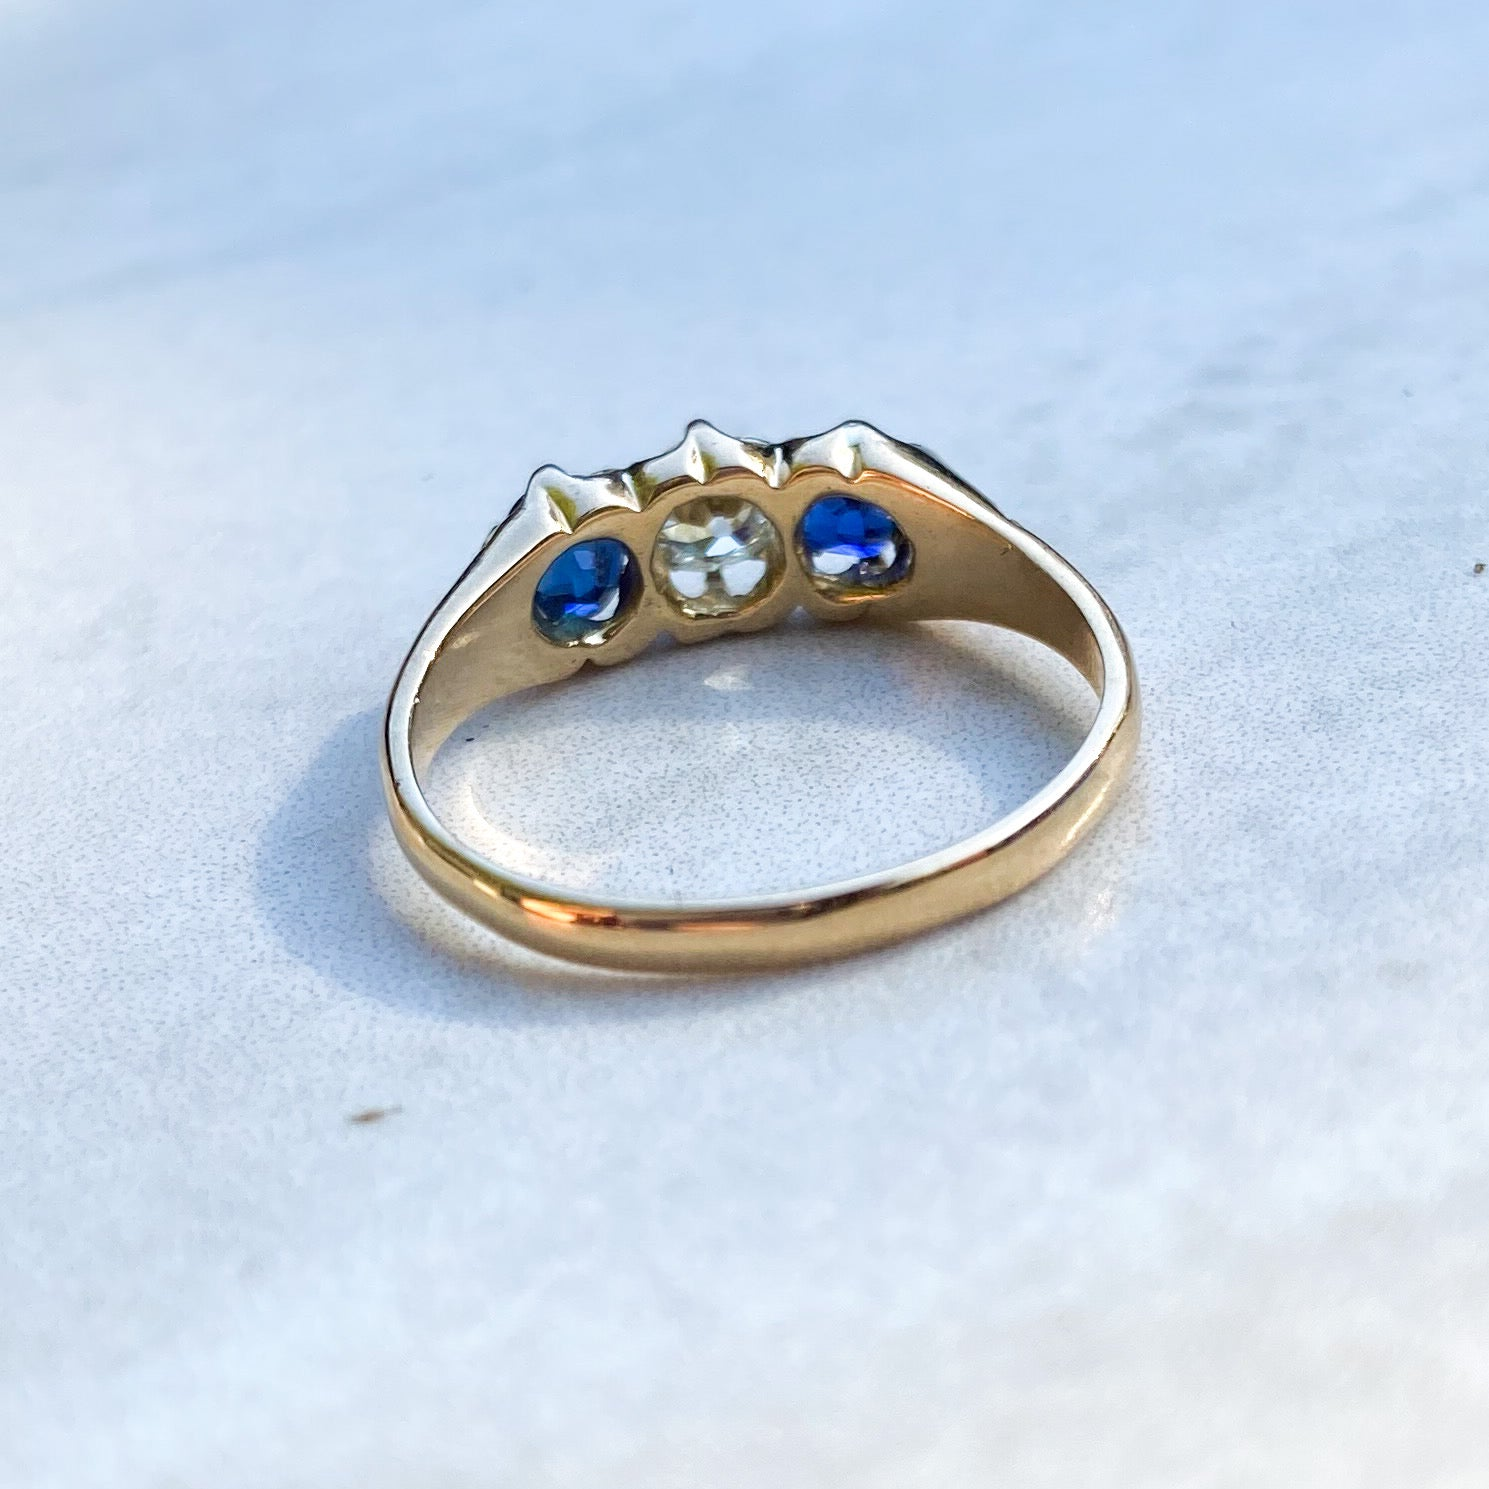 Sapphire and Diamond 3 Stone Ring; date 1806